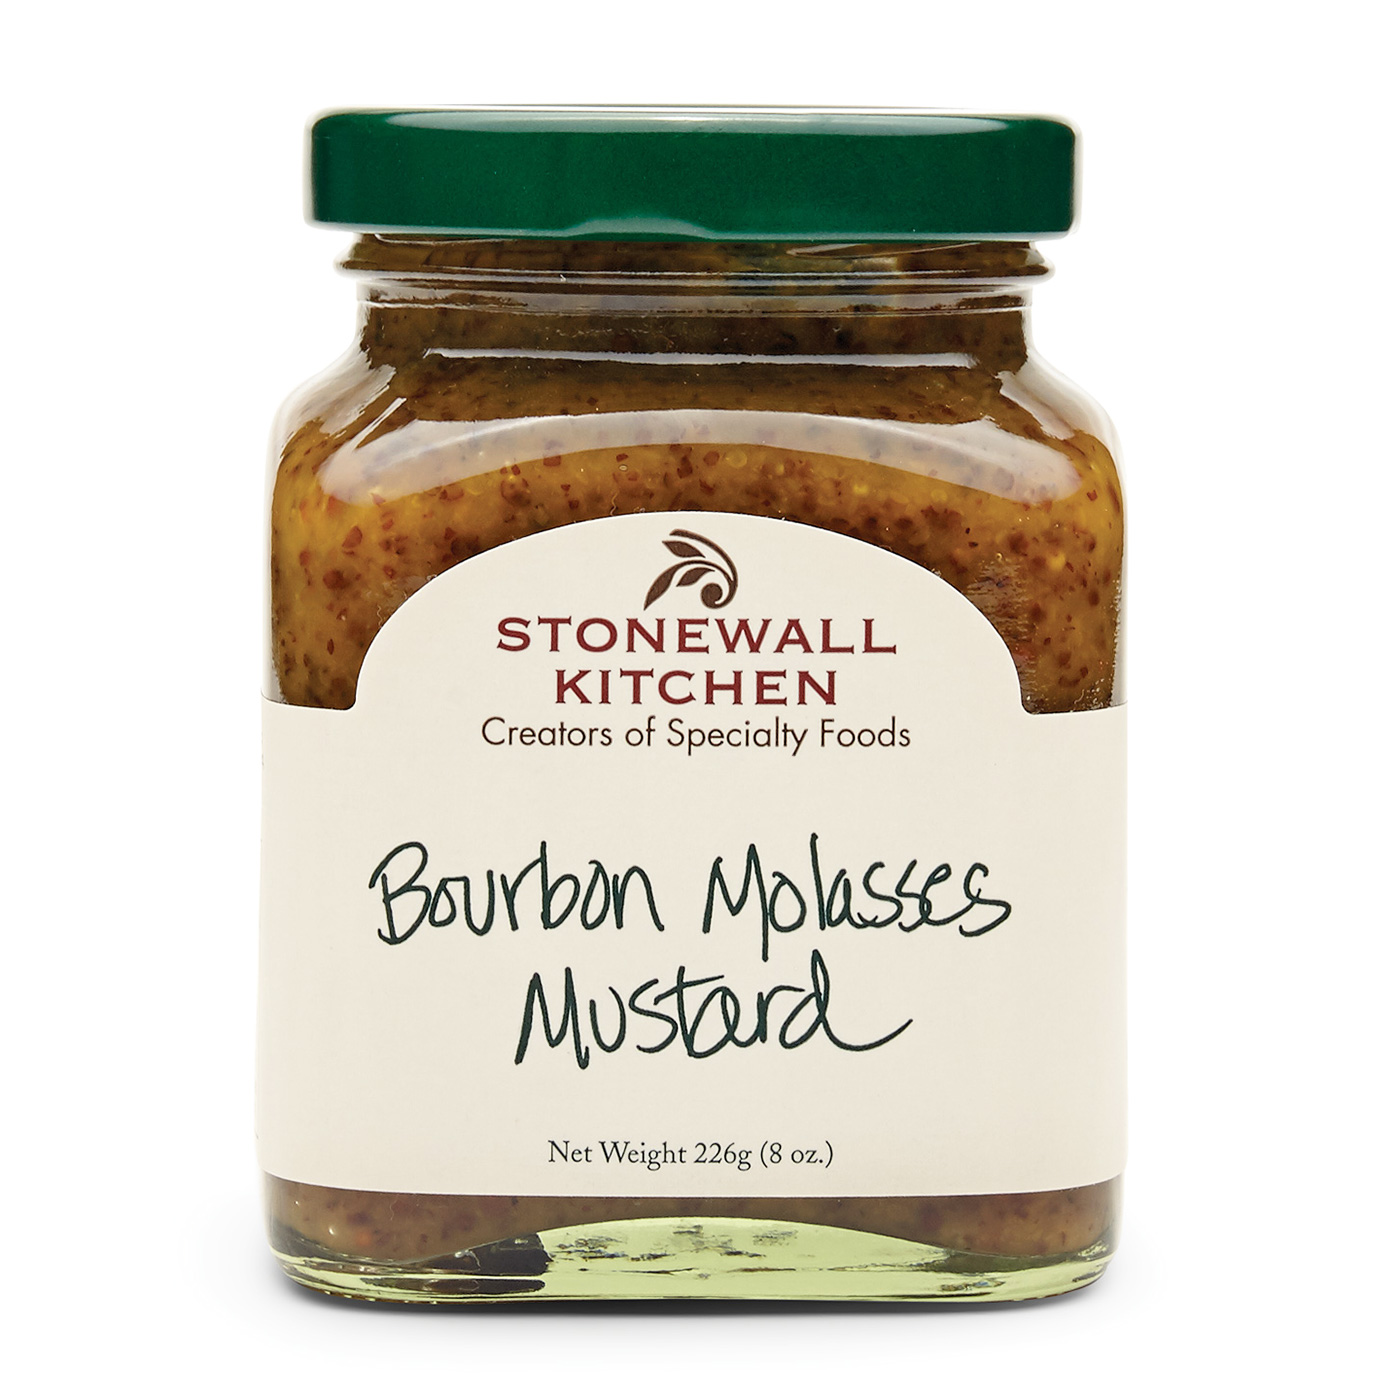 stonewall kitchen com portable islands bourbon molasses mustard condiments